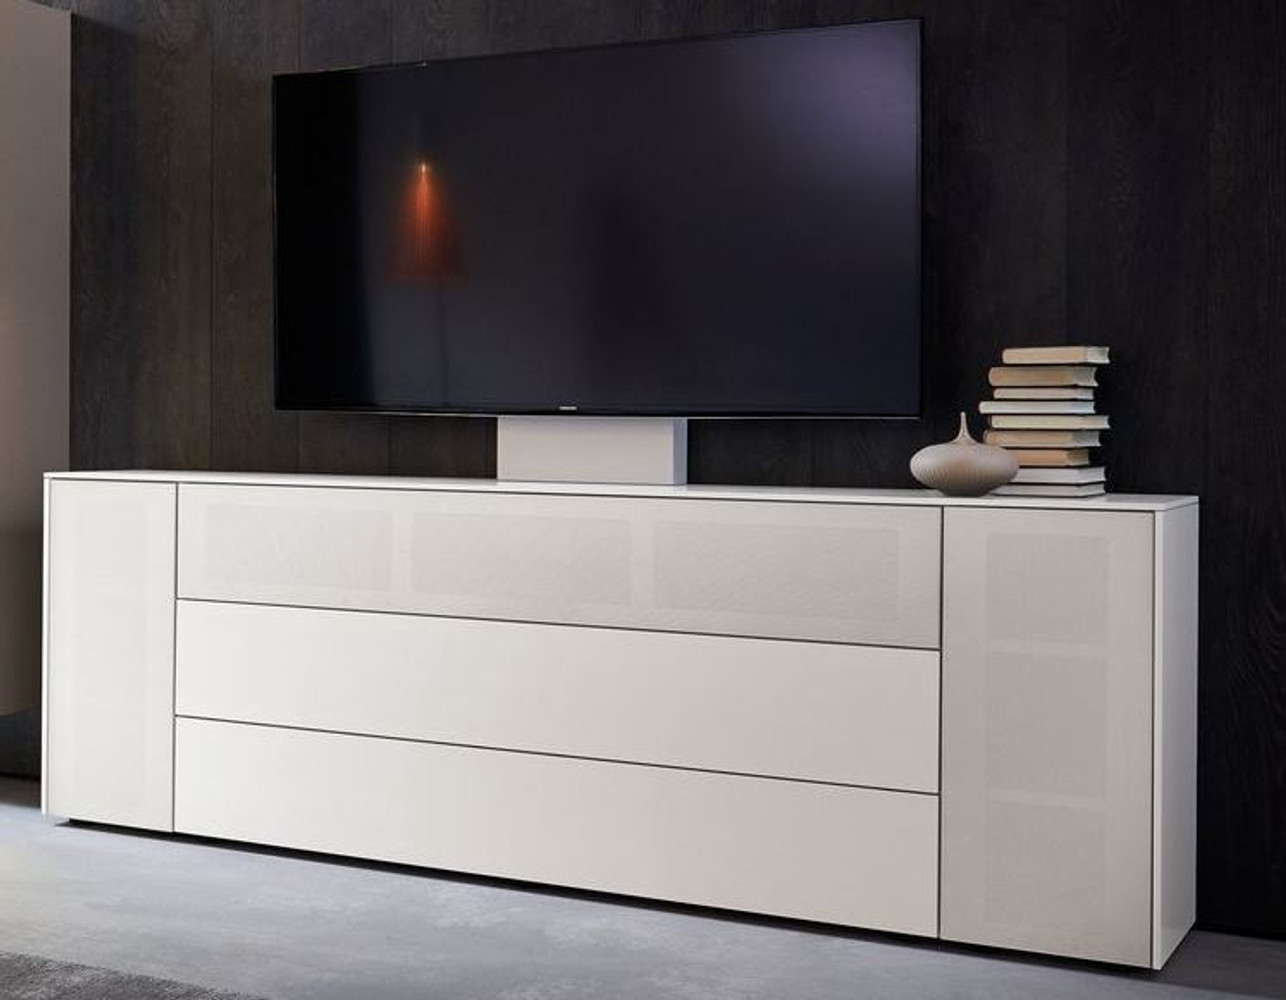 wk wohnen sideboard modell wk 419 intono tv sideboard. Black Bedroom Furniture Sets. Home Design Ideas